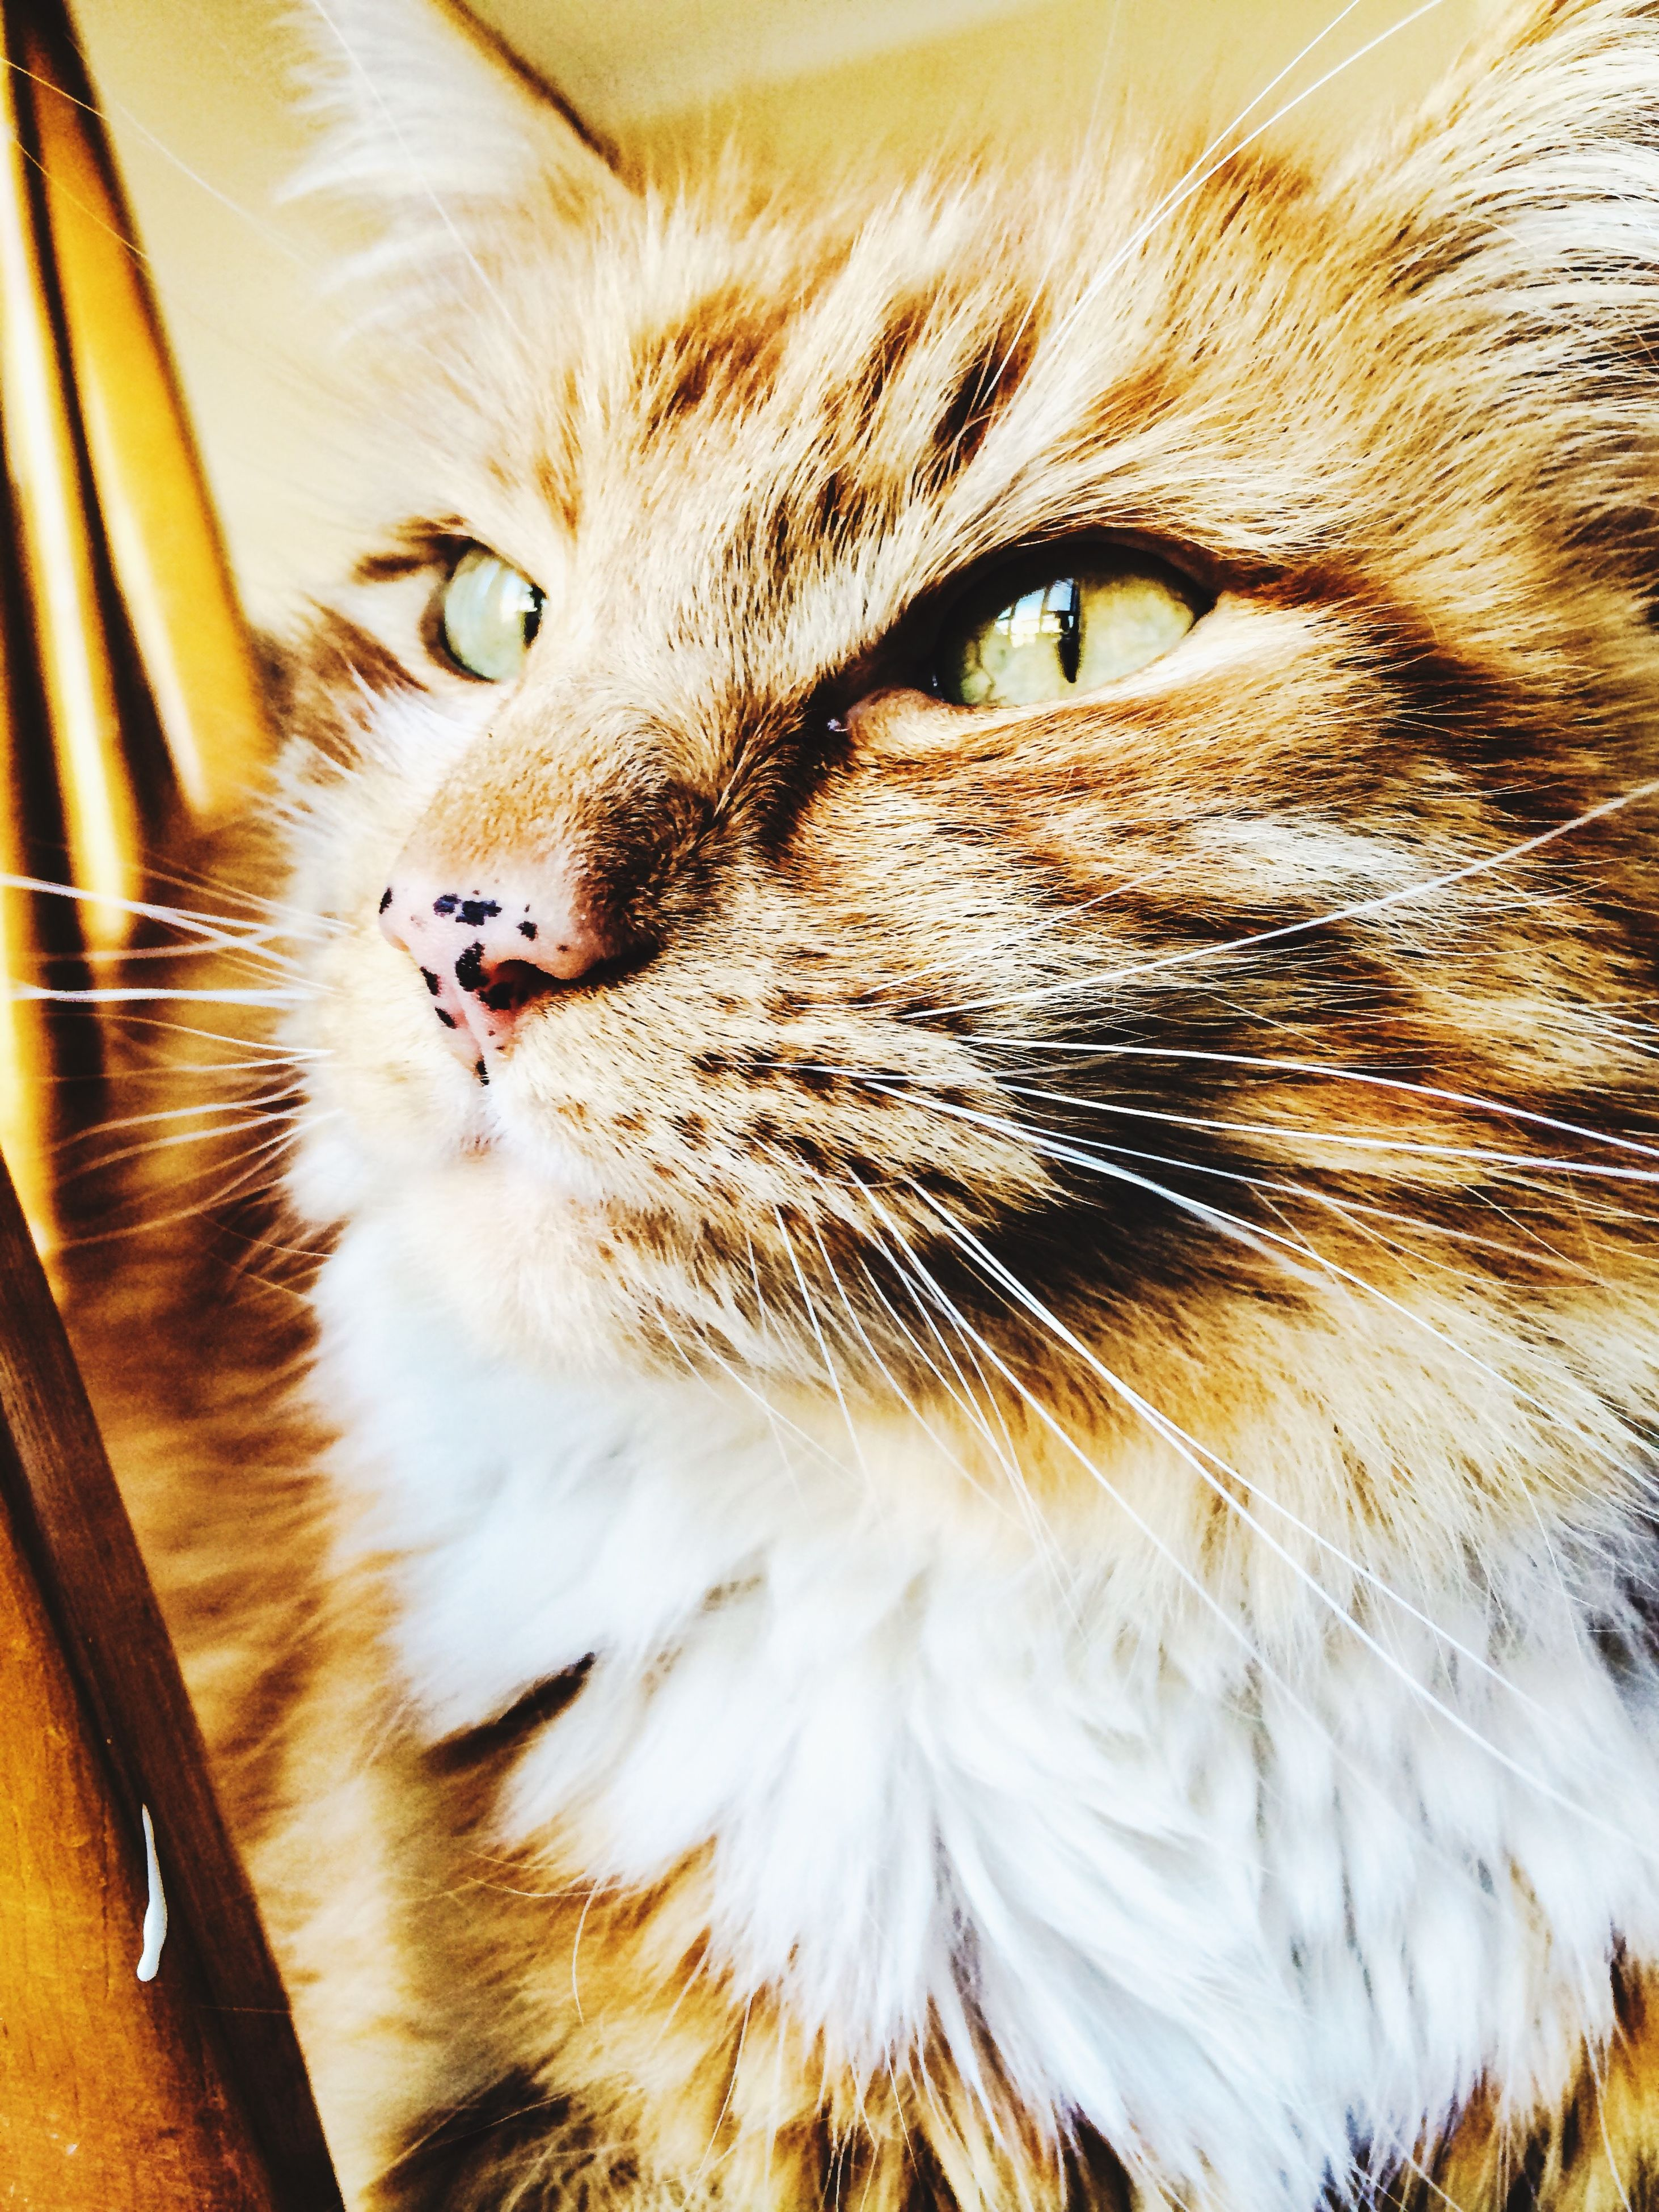 domestic cat, cat, pets, one animal, feline, domestic animals, animal themes, whisker, mammal, indoors, close-up, animal head, animal eye, staring, whiskers, looking away, animal body part, portrait, no people, alertness